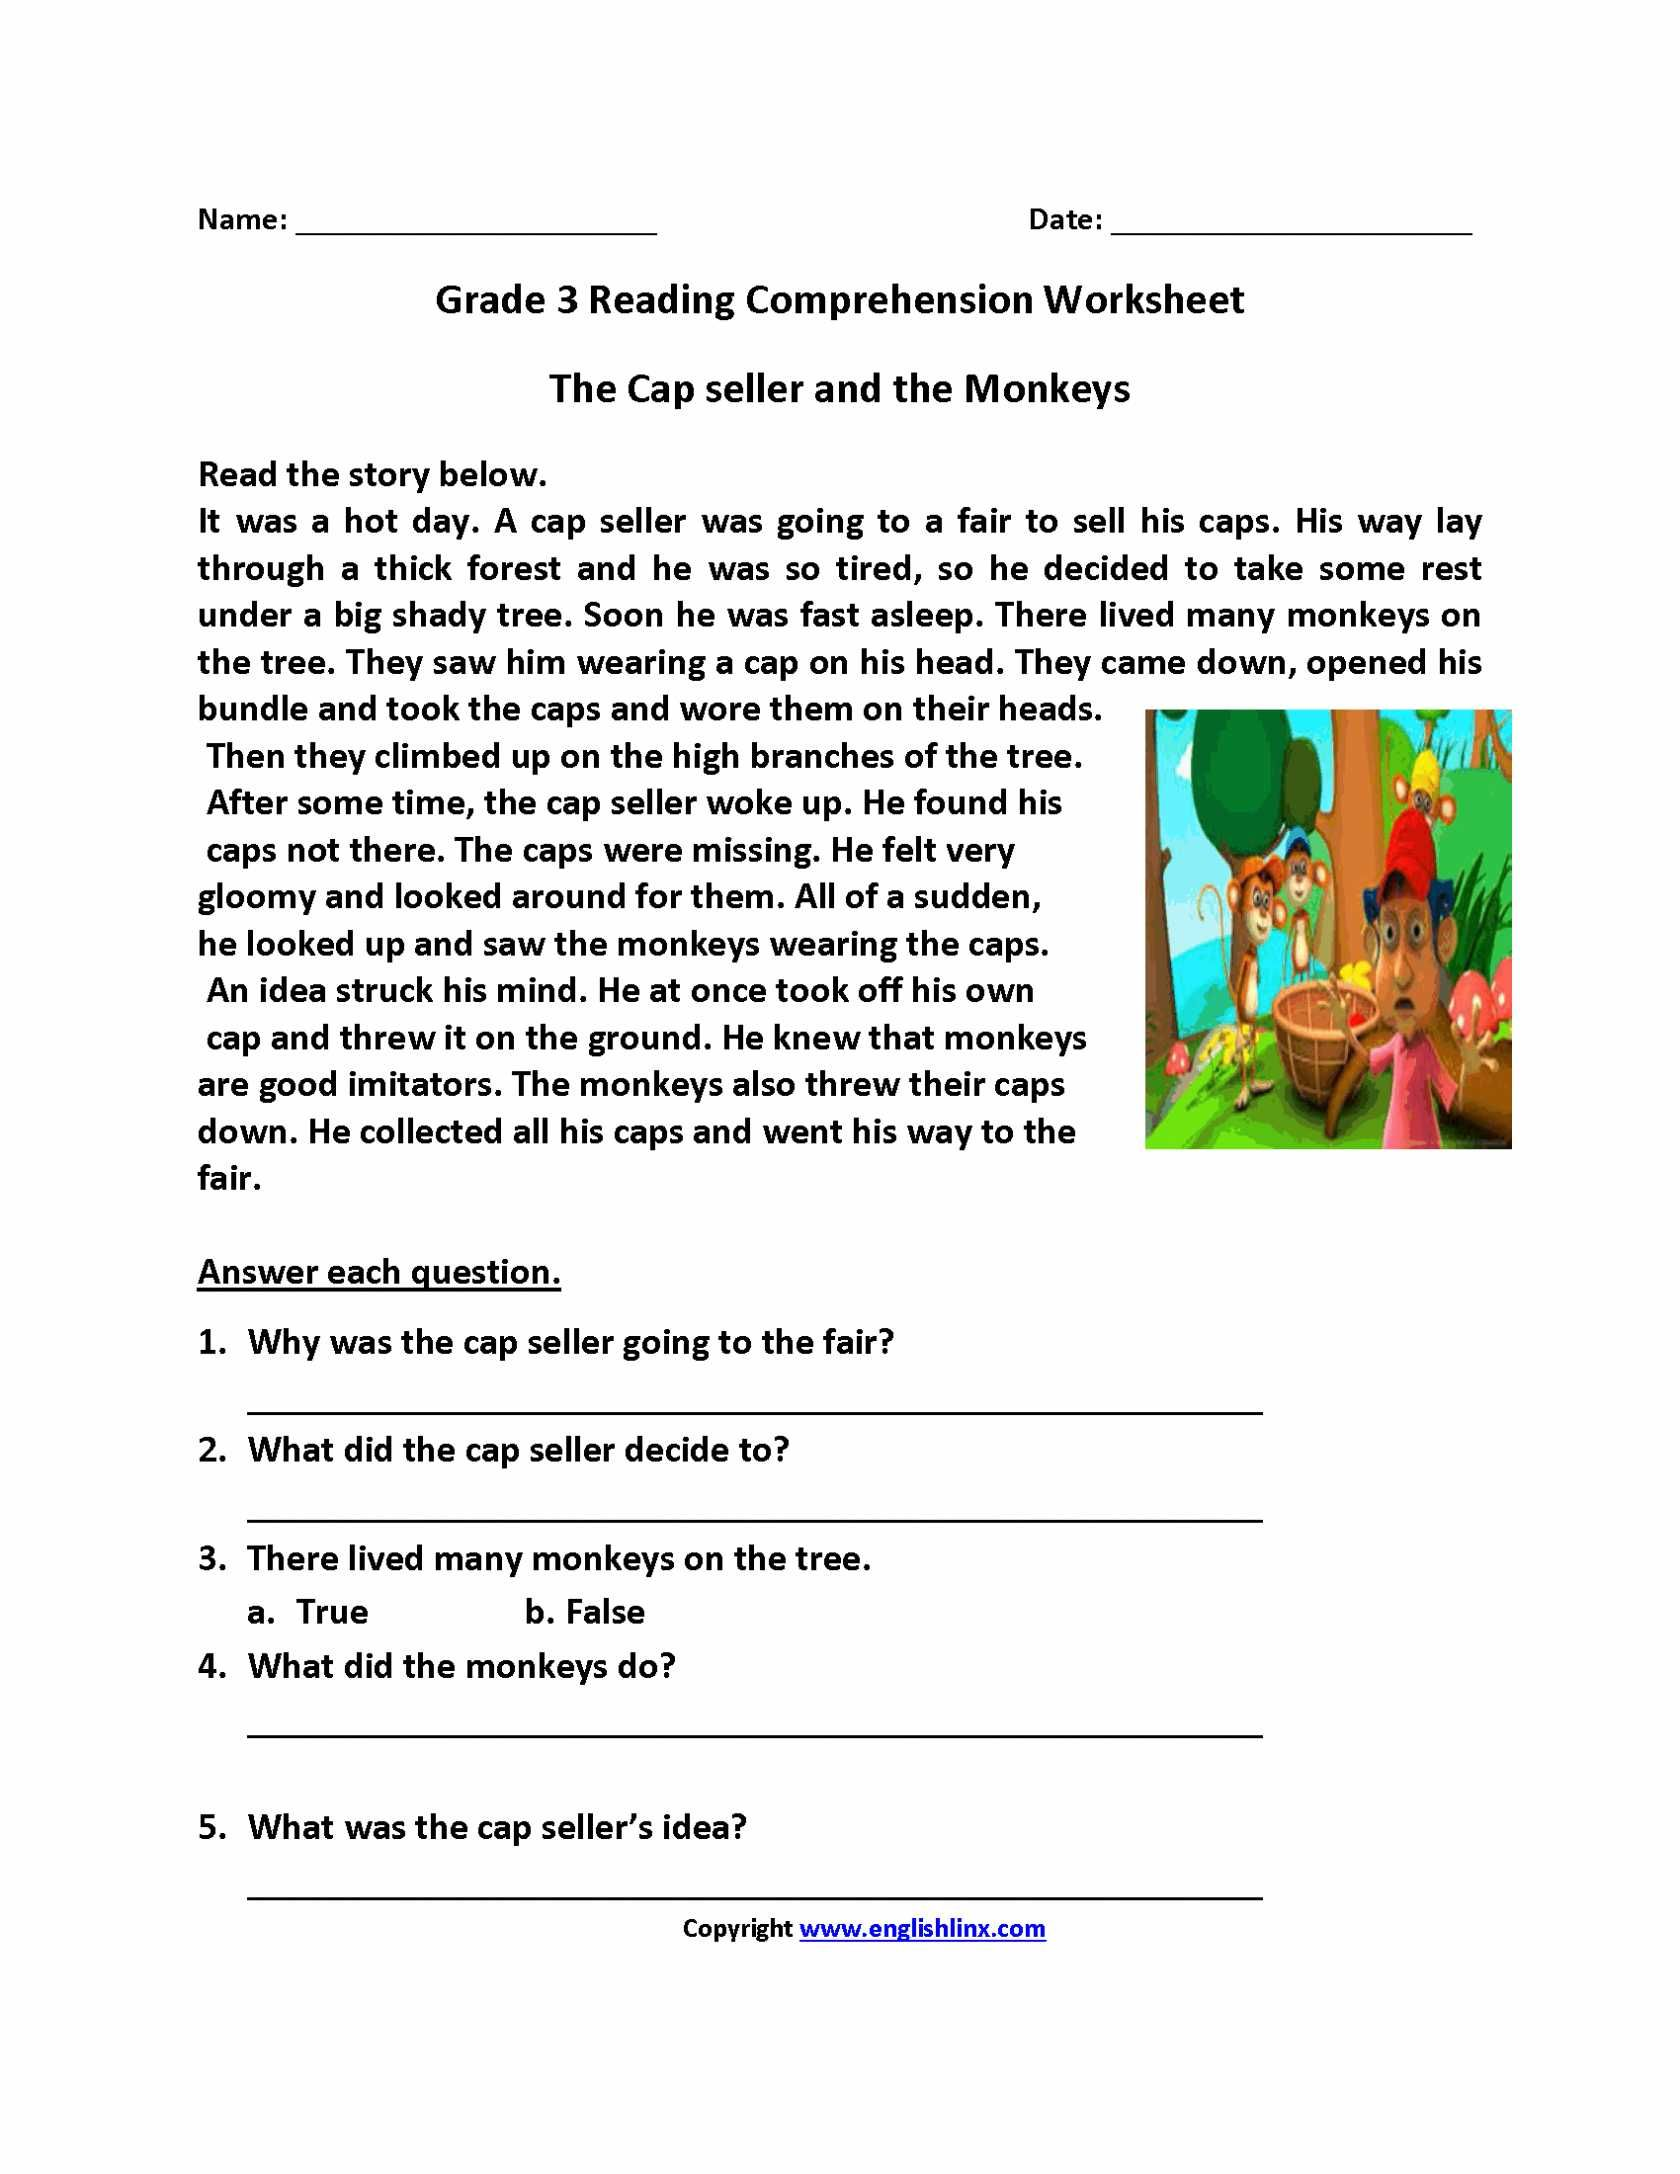 hight resolution of Pin by Amber Jawaid on My saves in 2020   3rd grade reading comprehension  worksheets